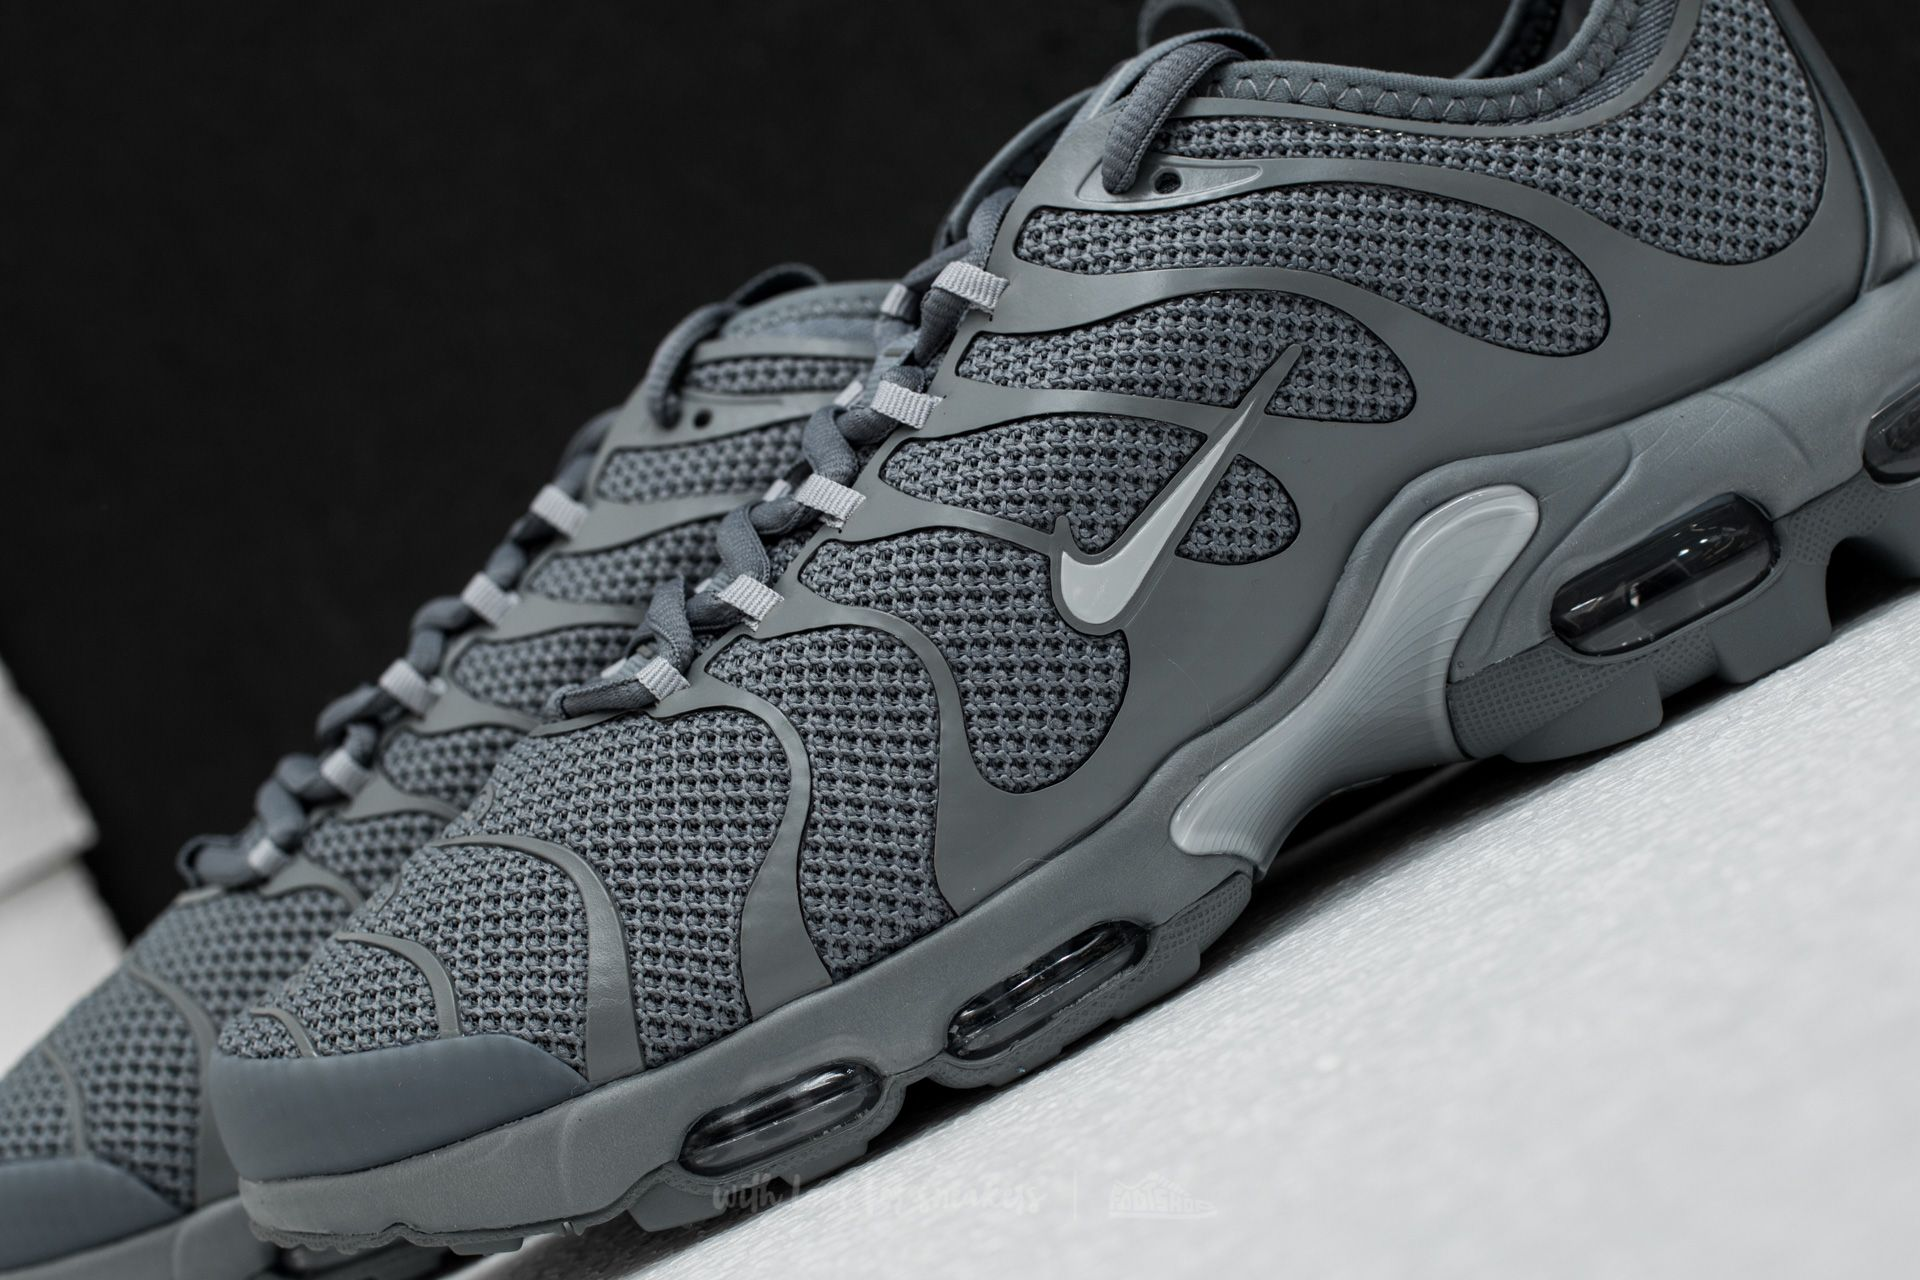 Nike Air Max Plus TN Ultra Cool Grey  Wolf Grey-Cool Grey at a c62eecddc195